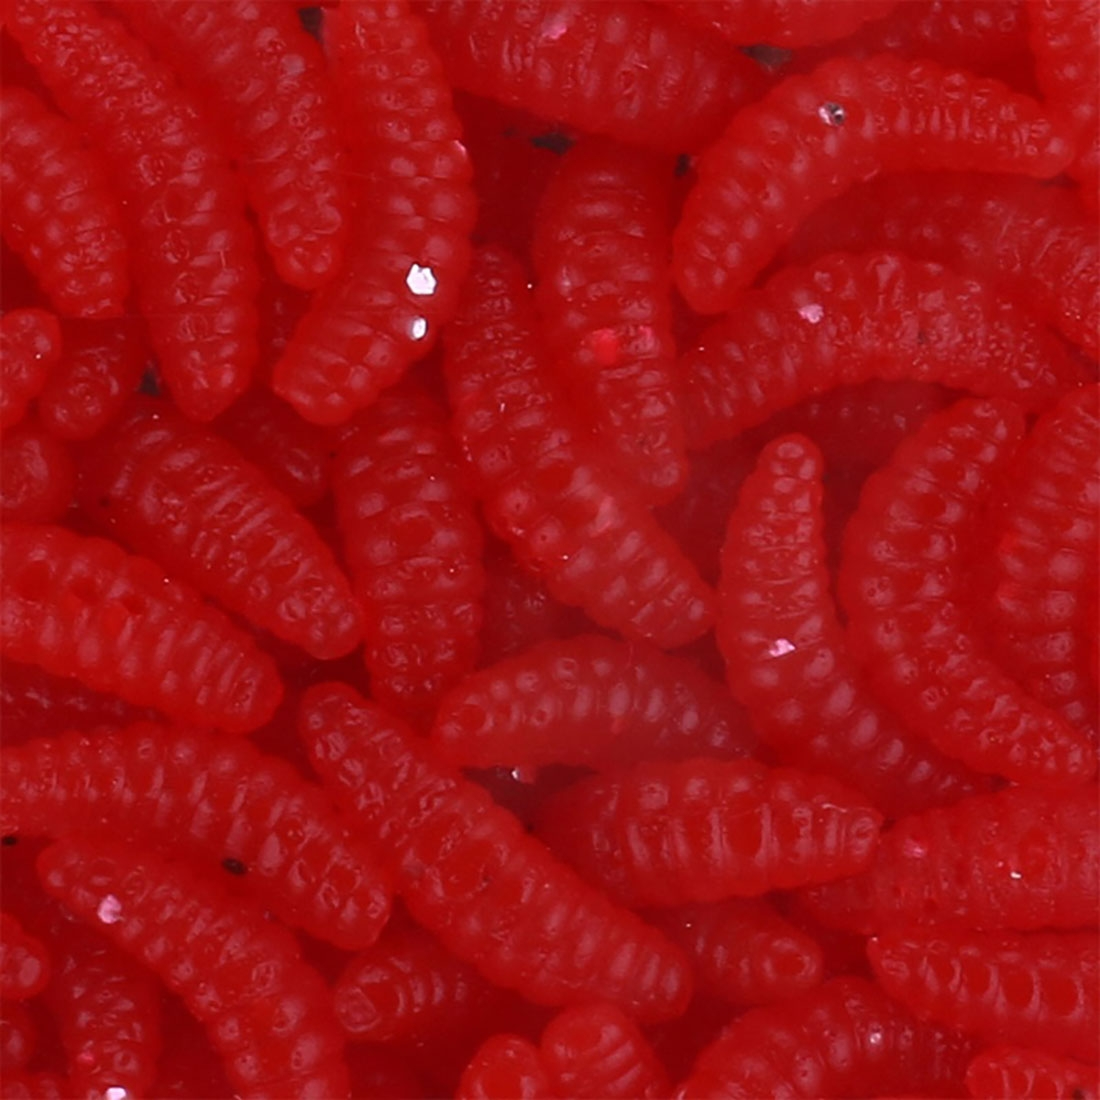 HENGJIA SO106 50 PCS 20mm Simulation Bread Bait Worms Crescent Soft Bait Horseback Fish Worm Bait Fishing Gear (Red)